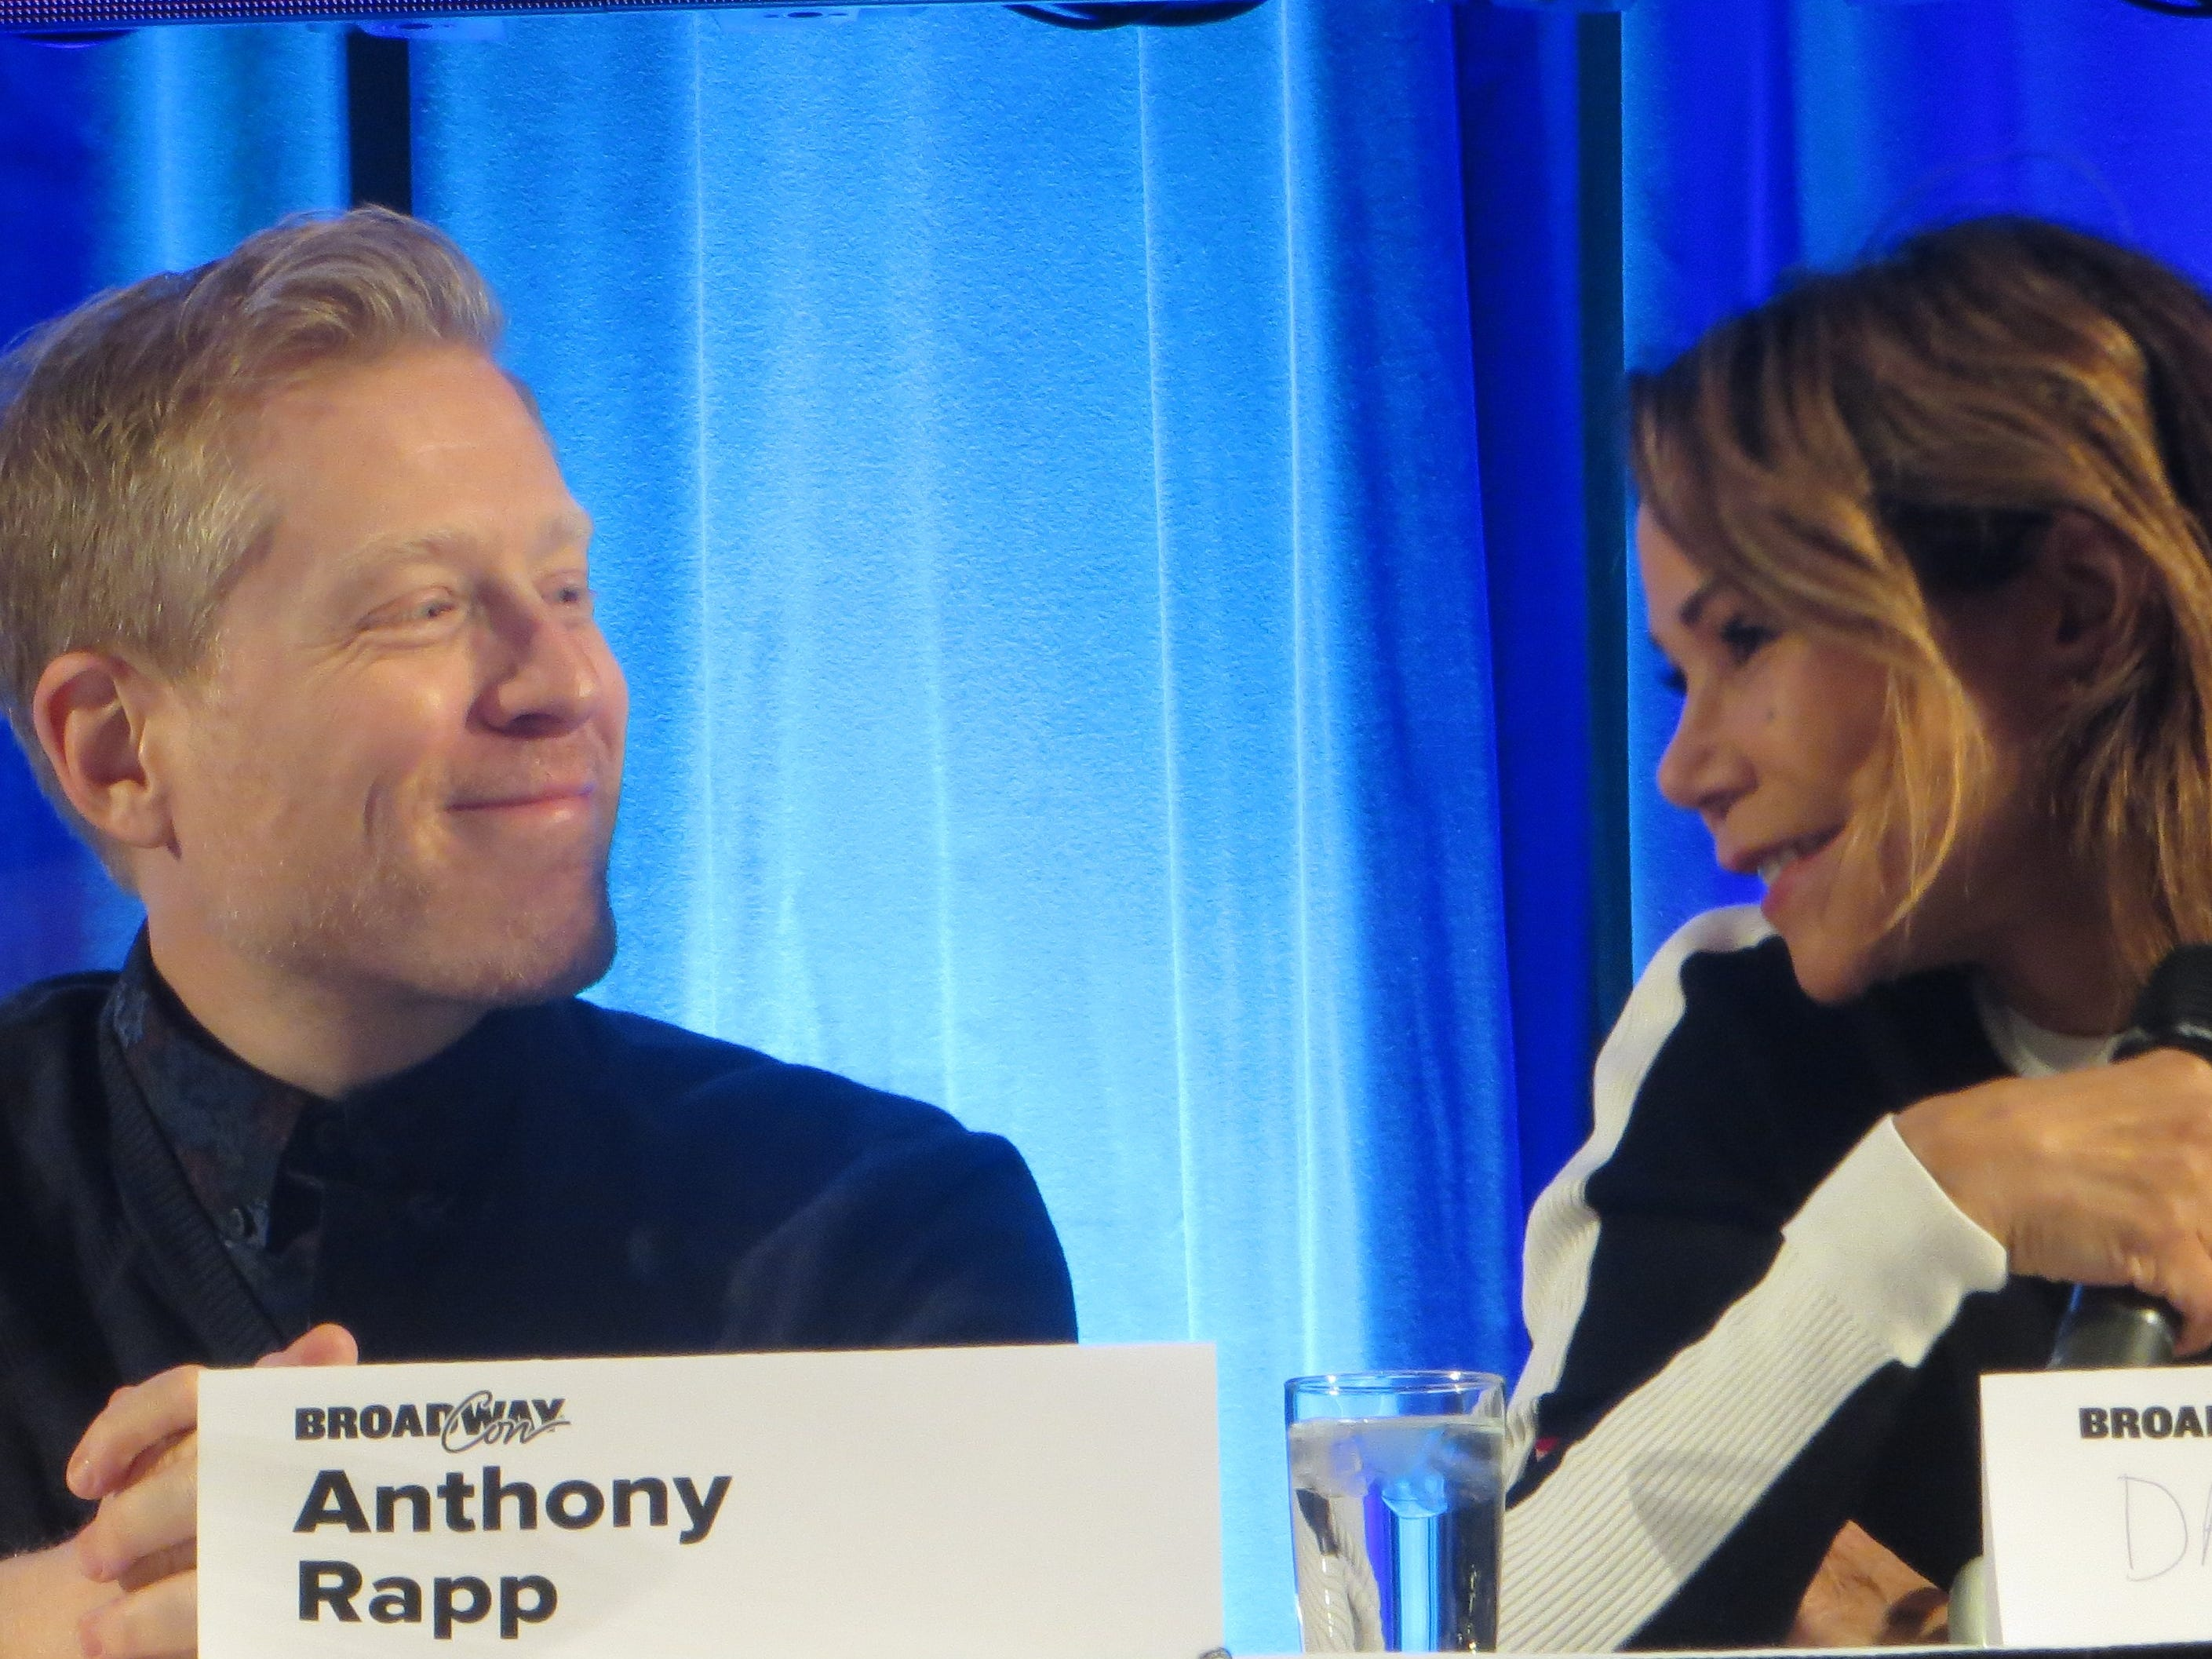 Anthony Rapp and Daphne Rubin-Vega take part in the Rentheads: Where Are We Now panel at BroadwayCon 2019, held Jan. 11 to 13, 2019, at the New York Hilton Midtown in Manhattan.